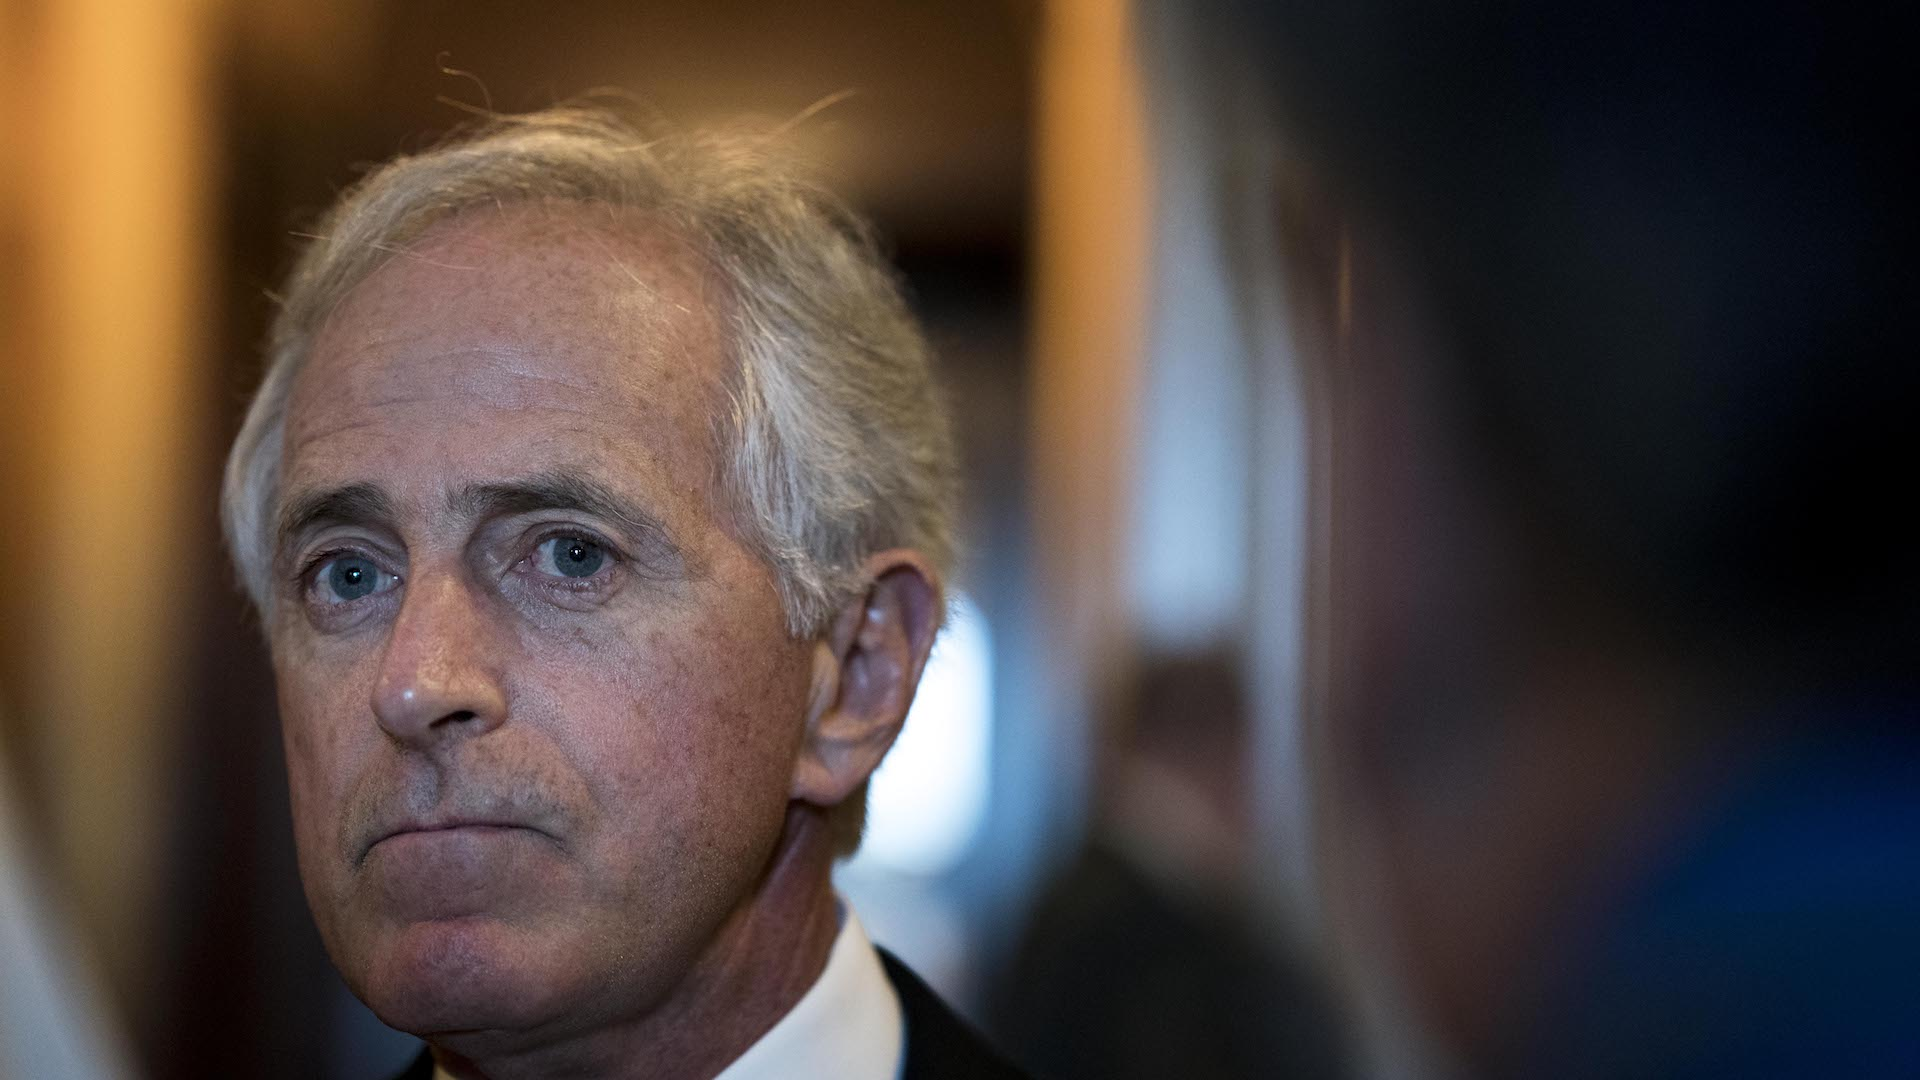 Corker calls White House 'an adult day care center' in response to Trump's latest Twitter tirade